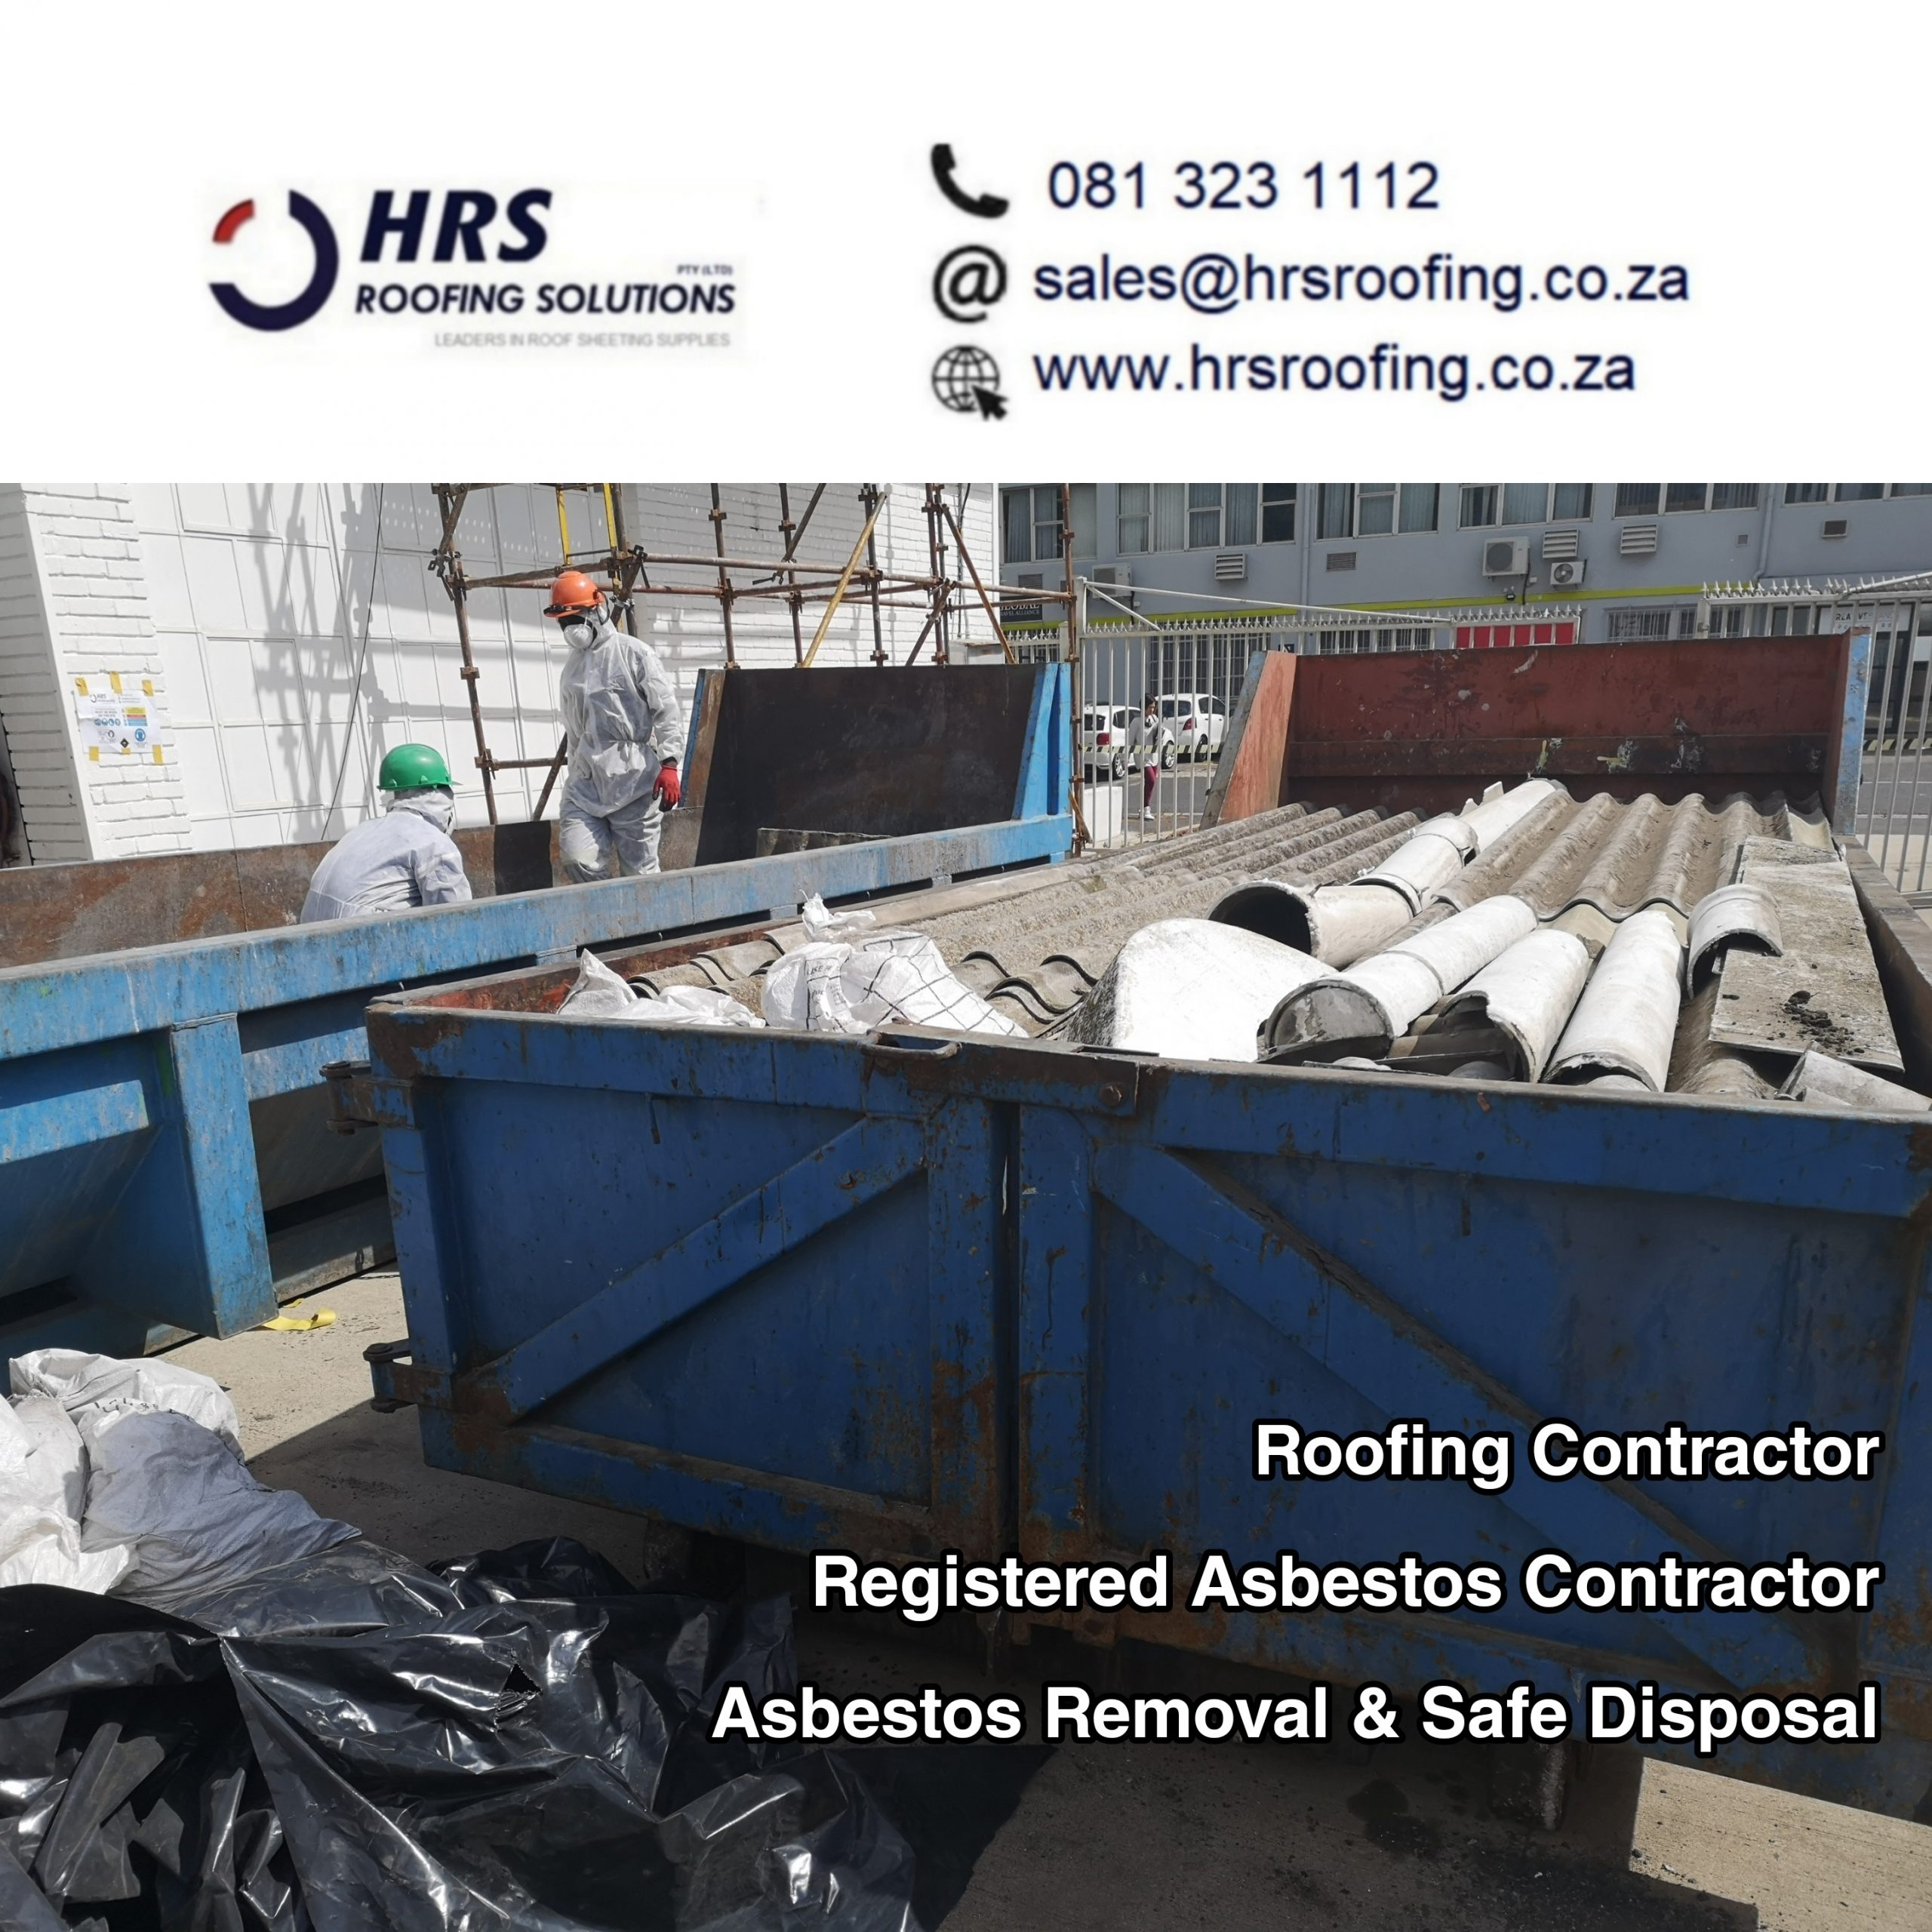 hrs roofing solutions registered Asbestos Contractor cape Town Asbestos disposal